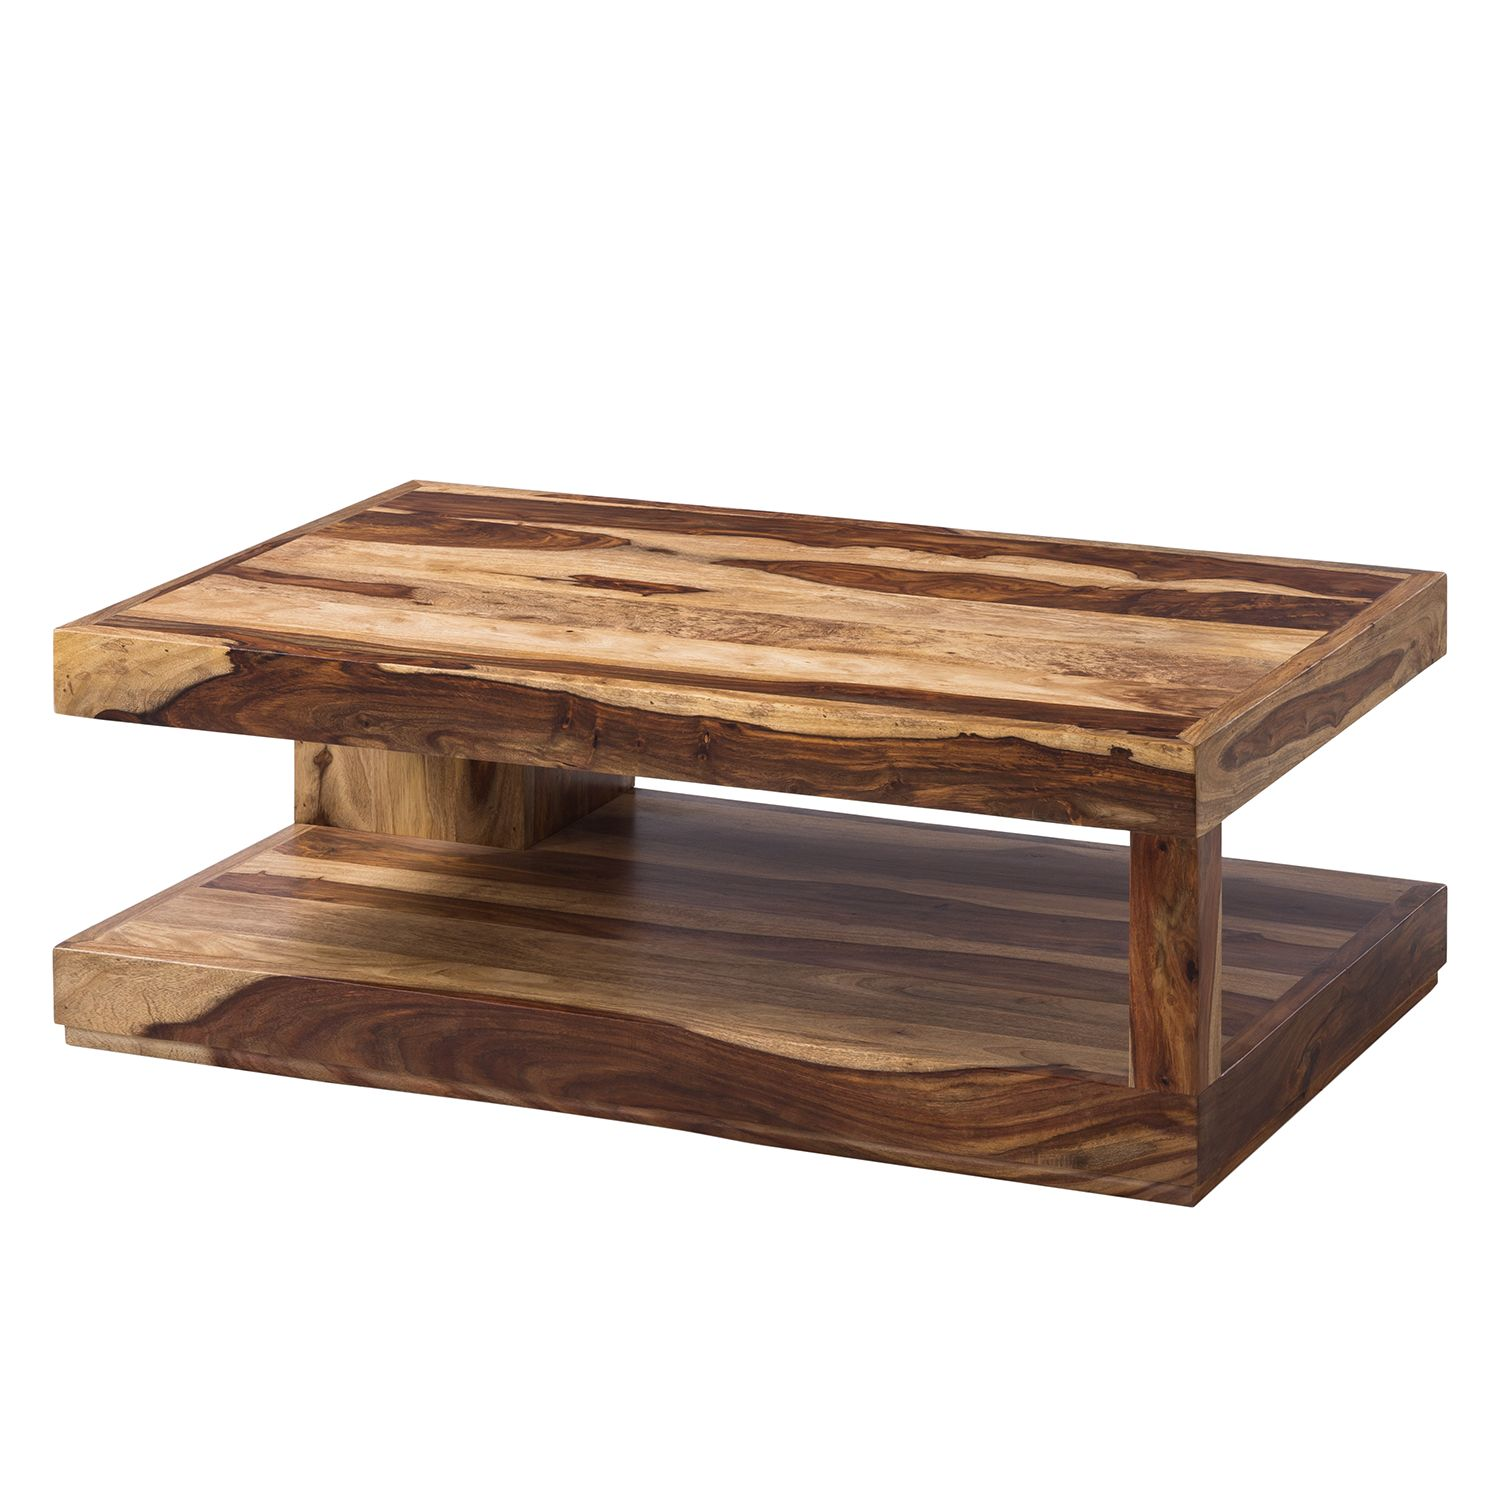 Table basse Madras I - Sheesham massif - Sheesham miel clair, Ars Natura